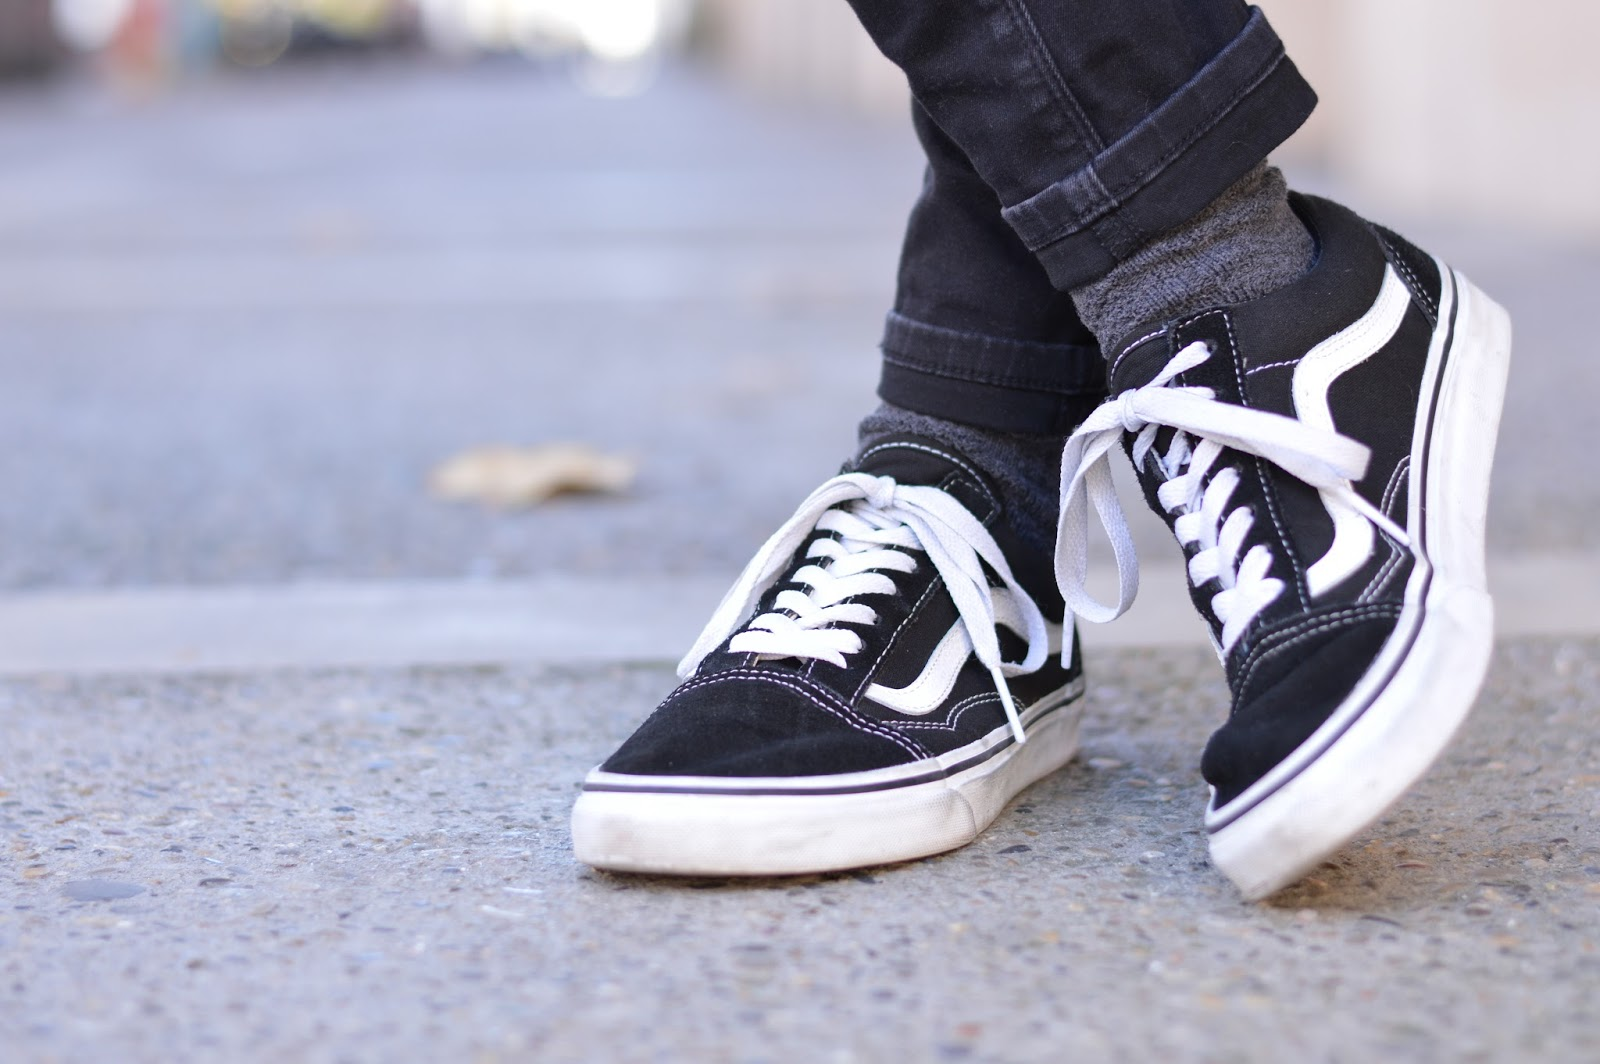 Vans Store Wallpapers High Quality | Download Free